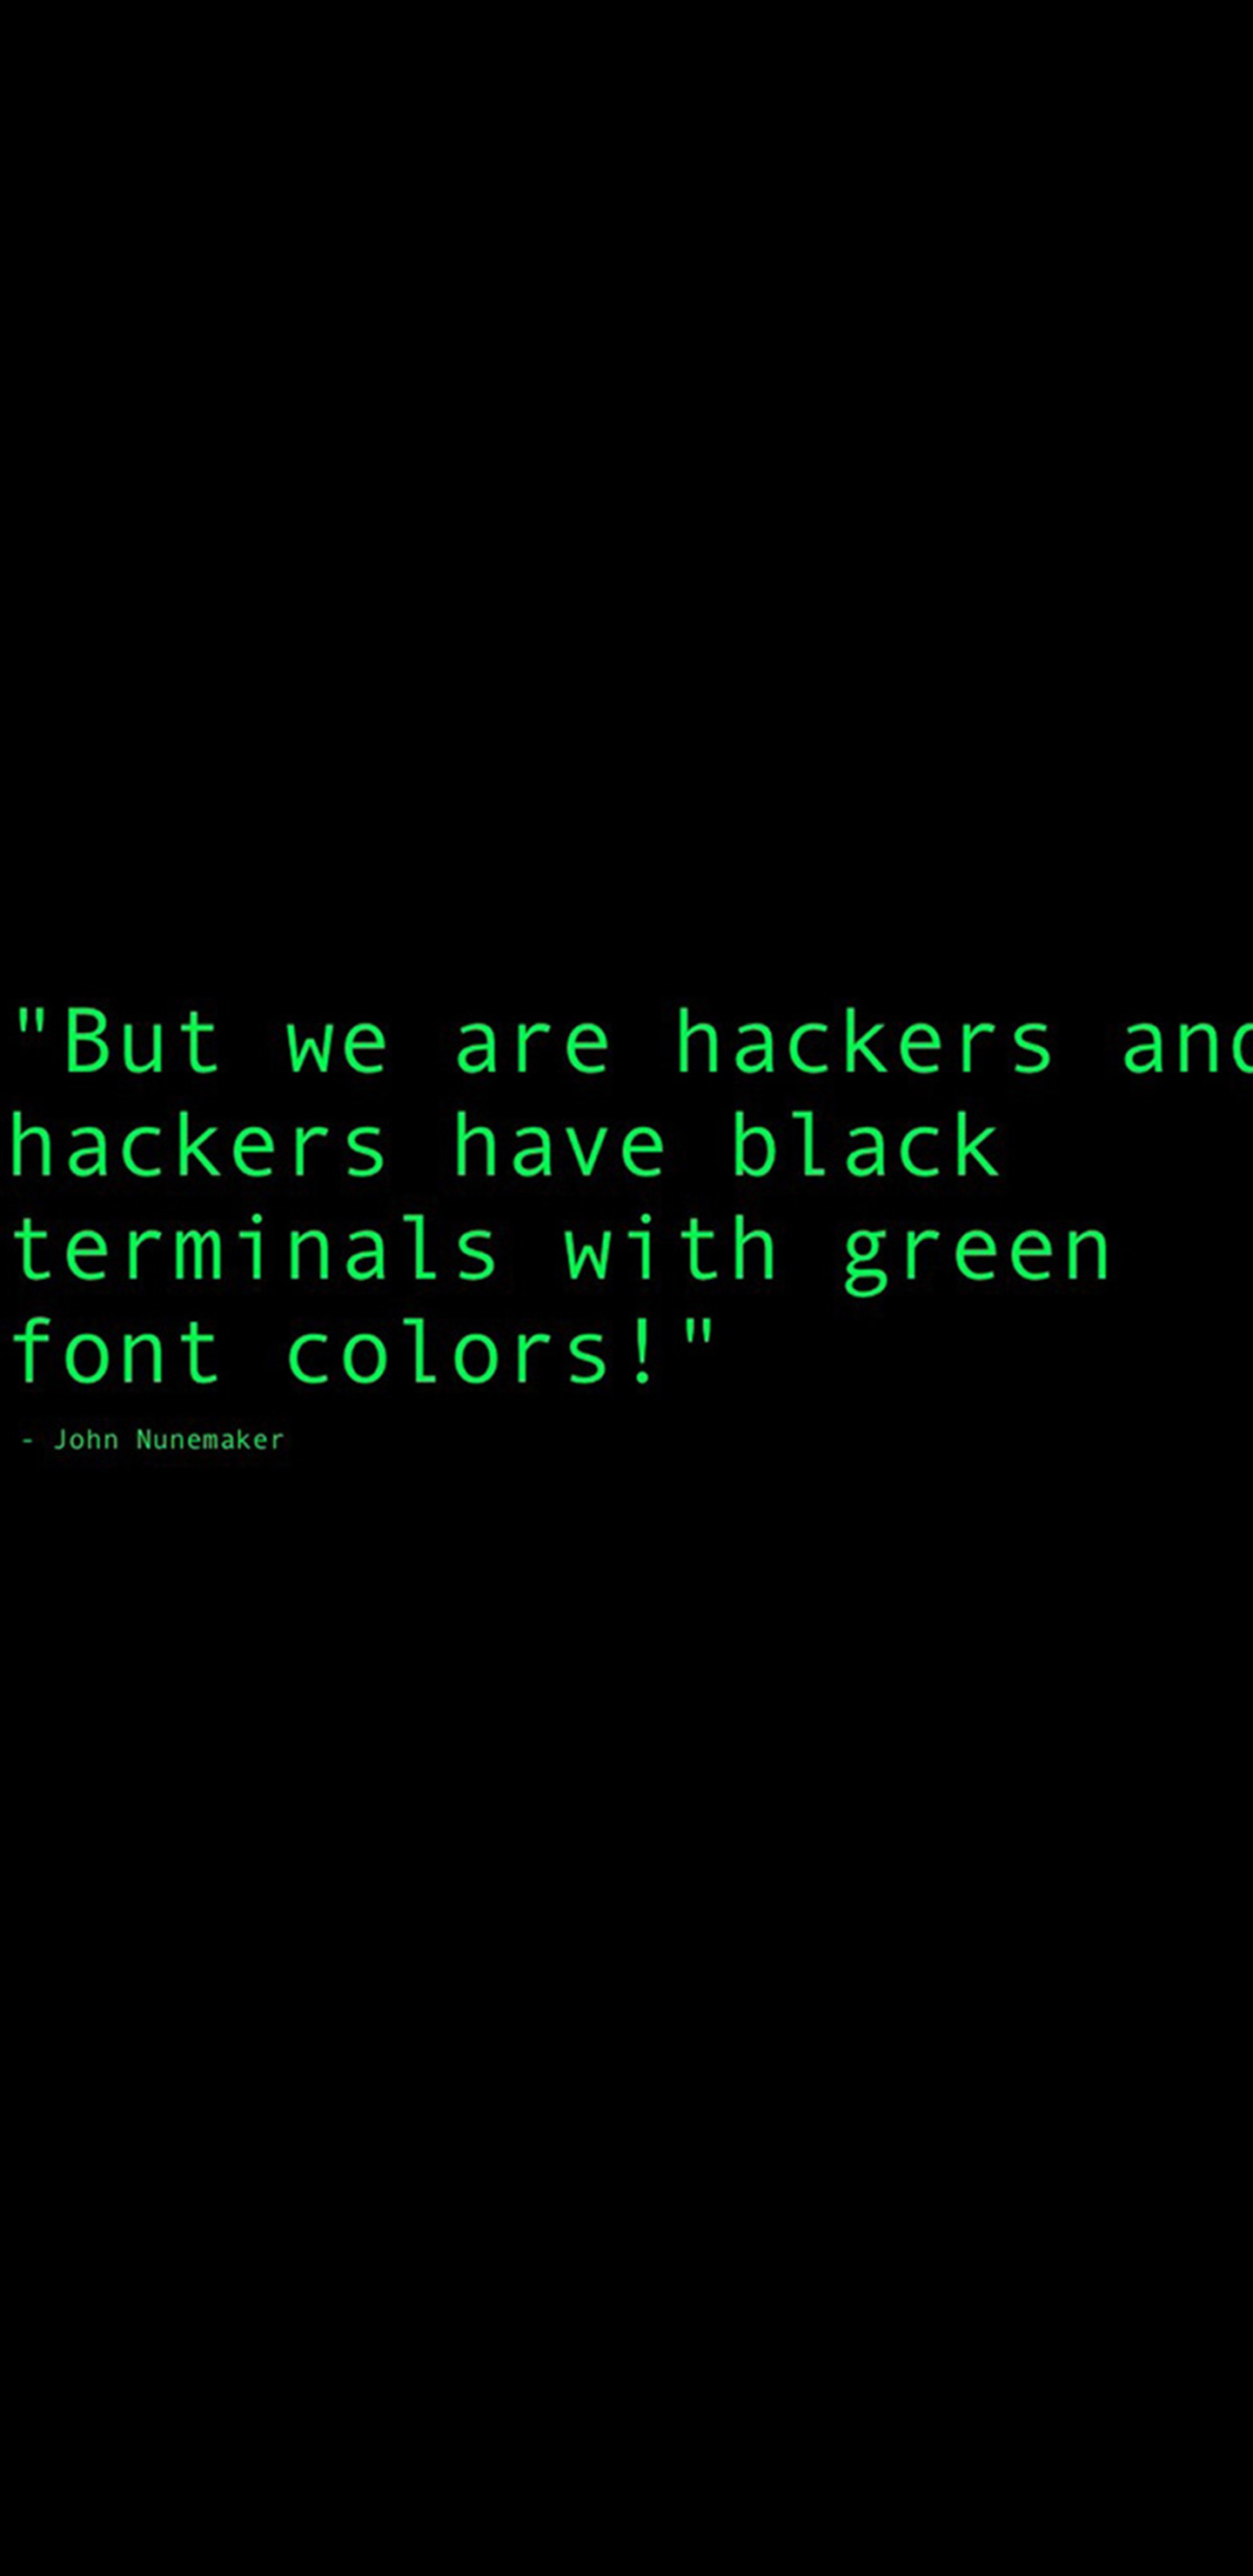 1440x2960 Black Terminals With Green Font Colors Quote Samsung